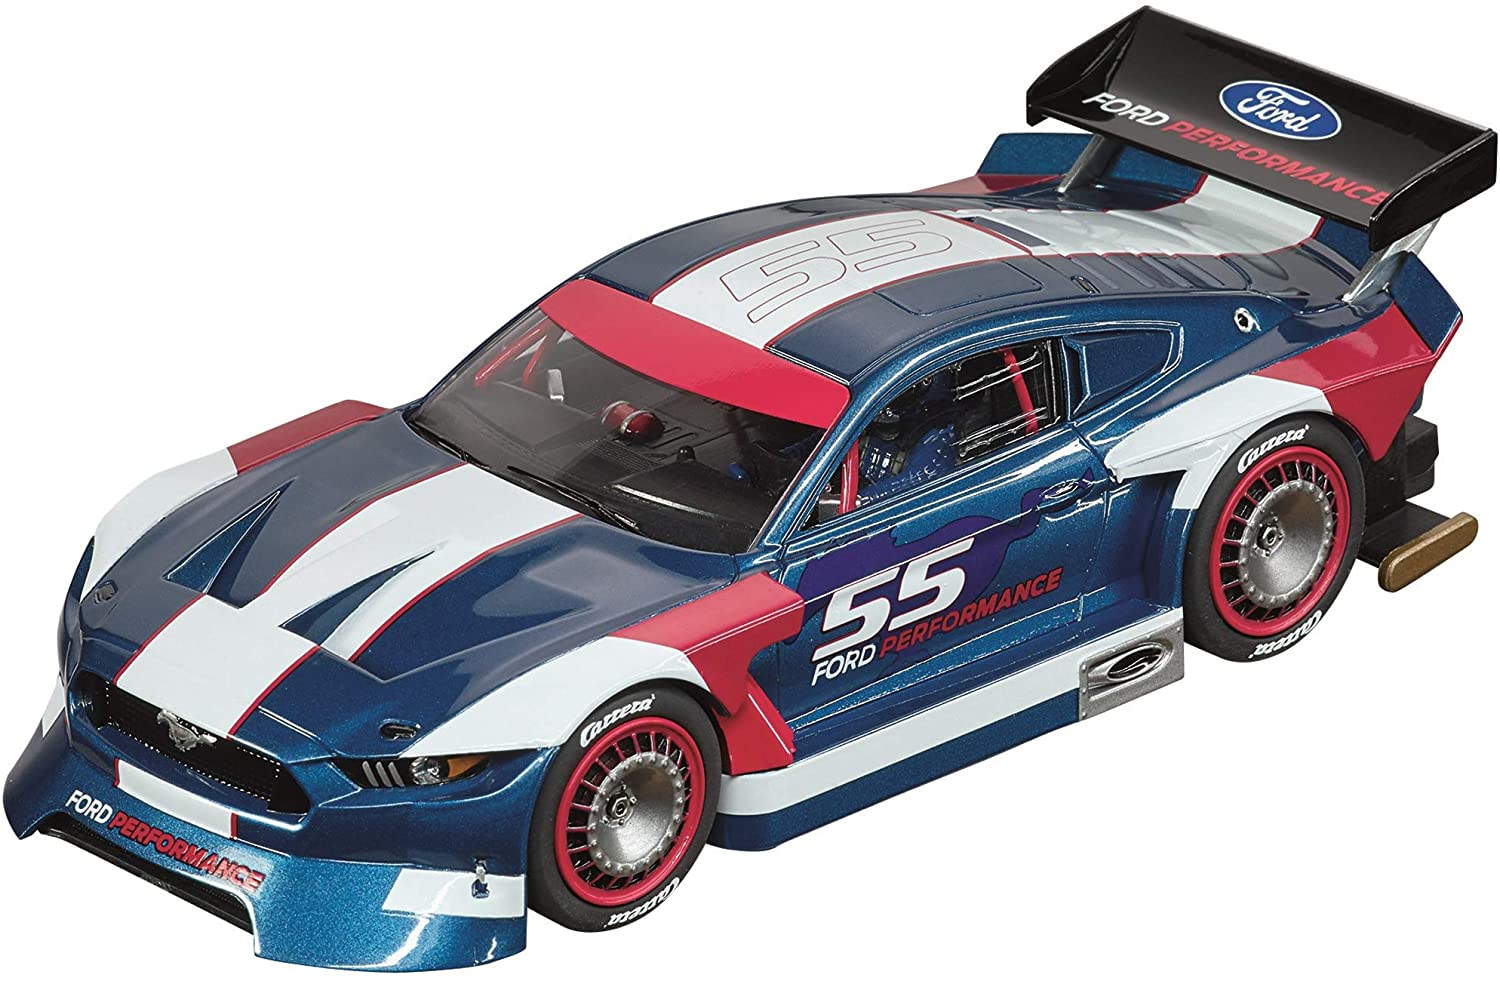 Carrera 27637 Evolution Ford Mustang GTY, No.55